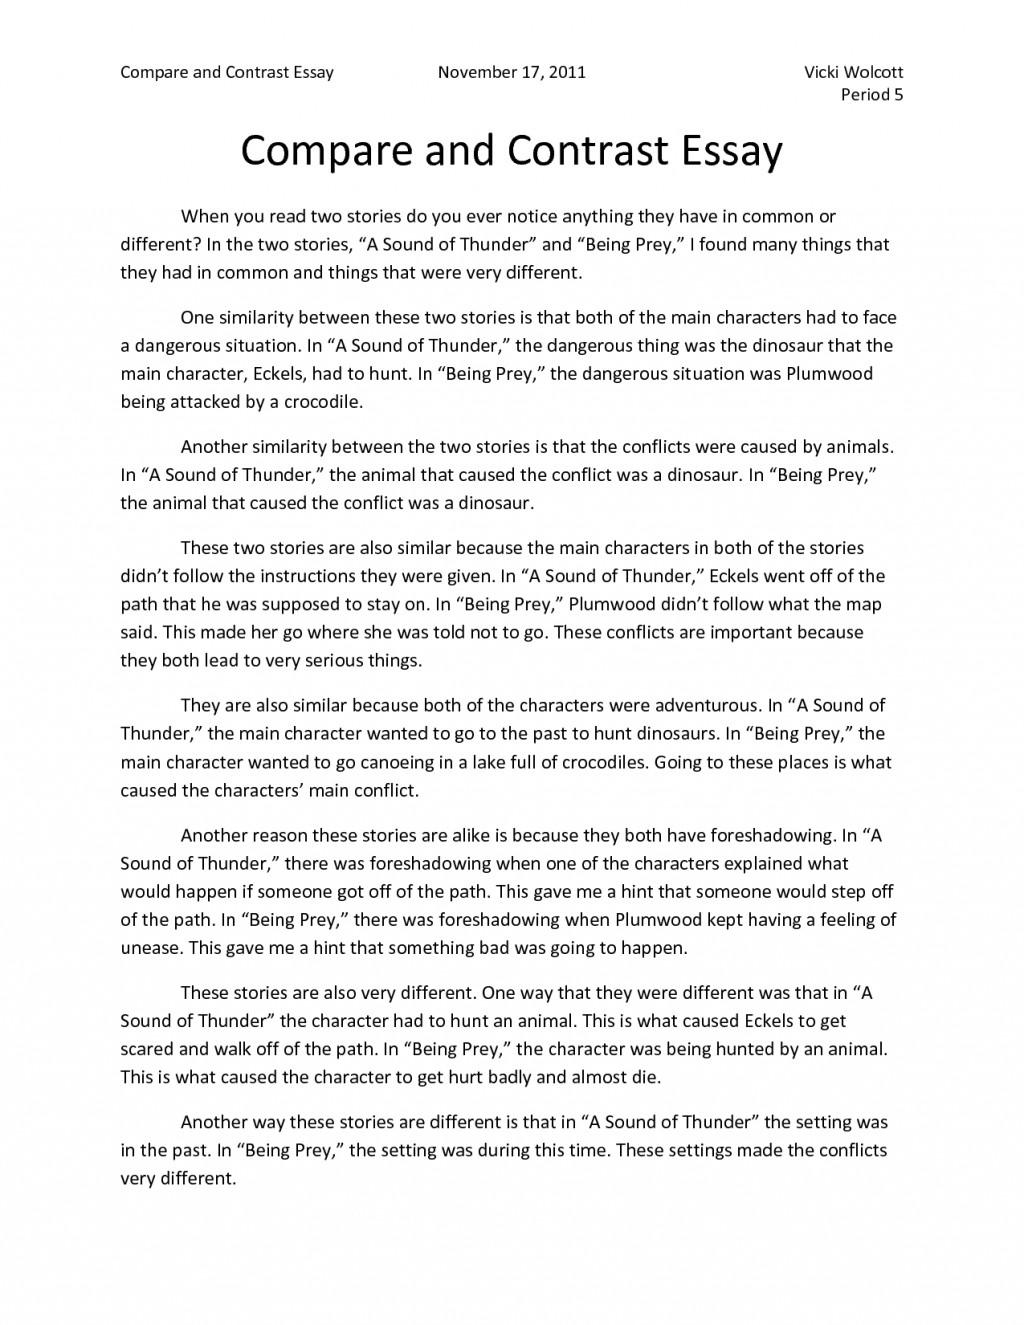 004 Compare And Contrast Essay Sample Example Perfect Essays Introduction College Examples  Incredible 6th Grade Comparison Pdf Point ByLarge